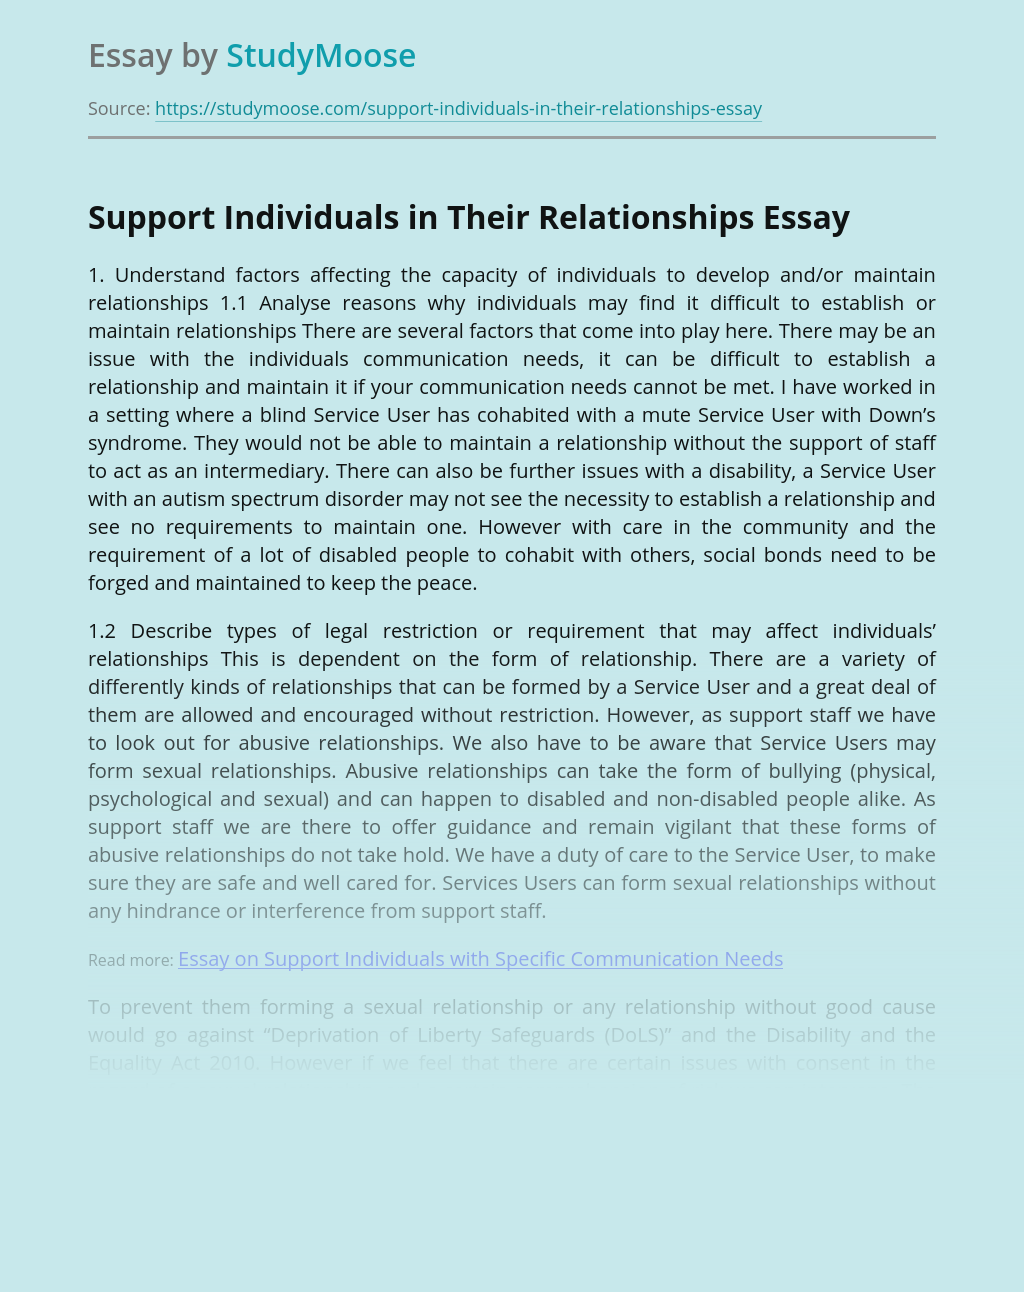 Support Individuals in Their Relationships